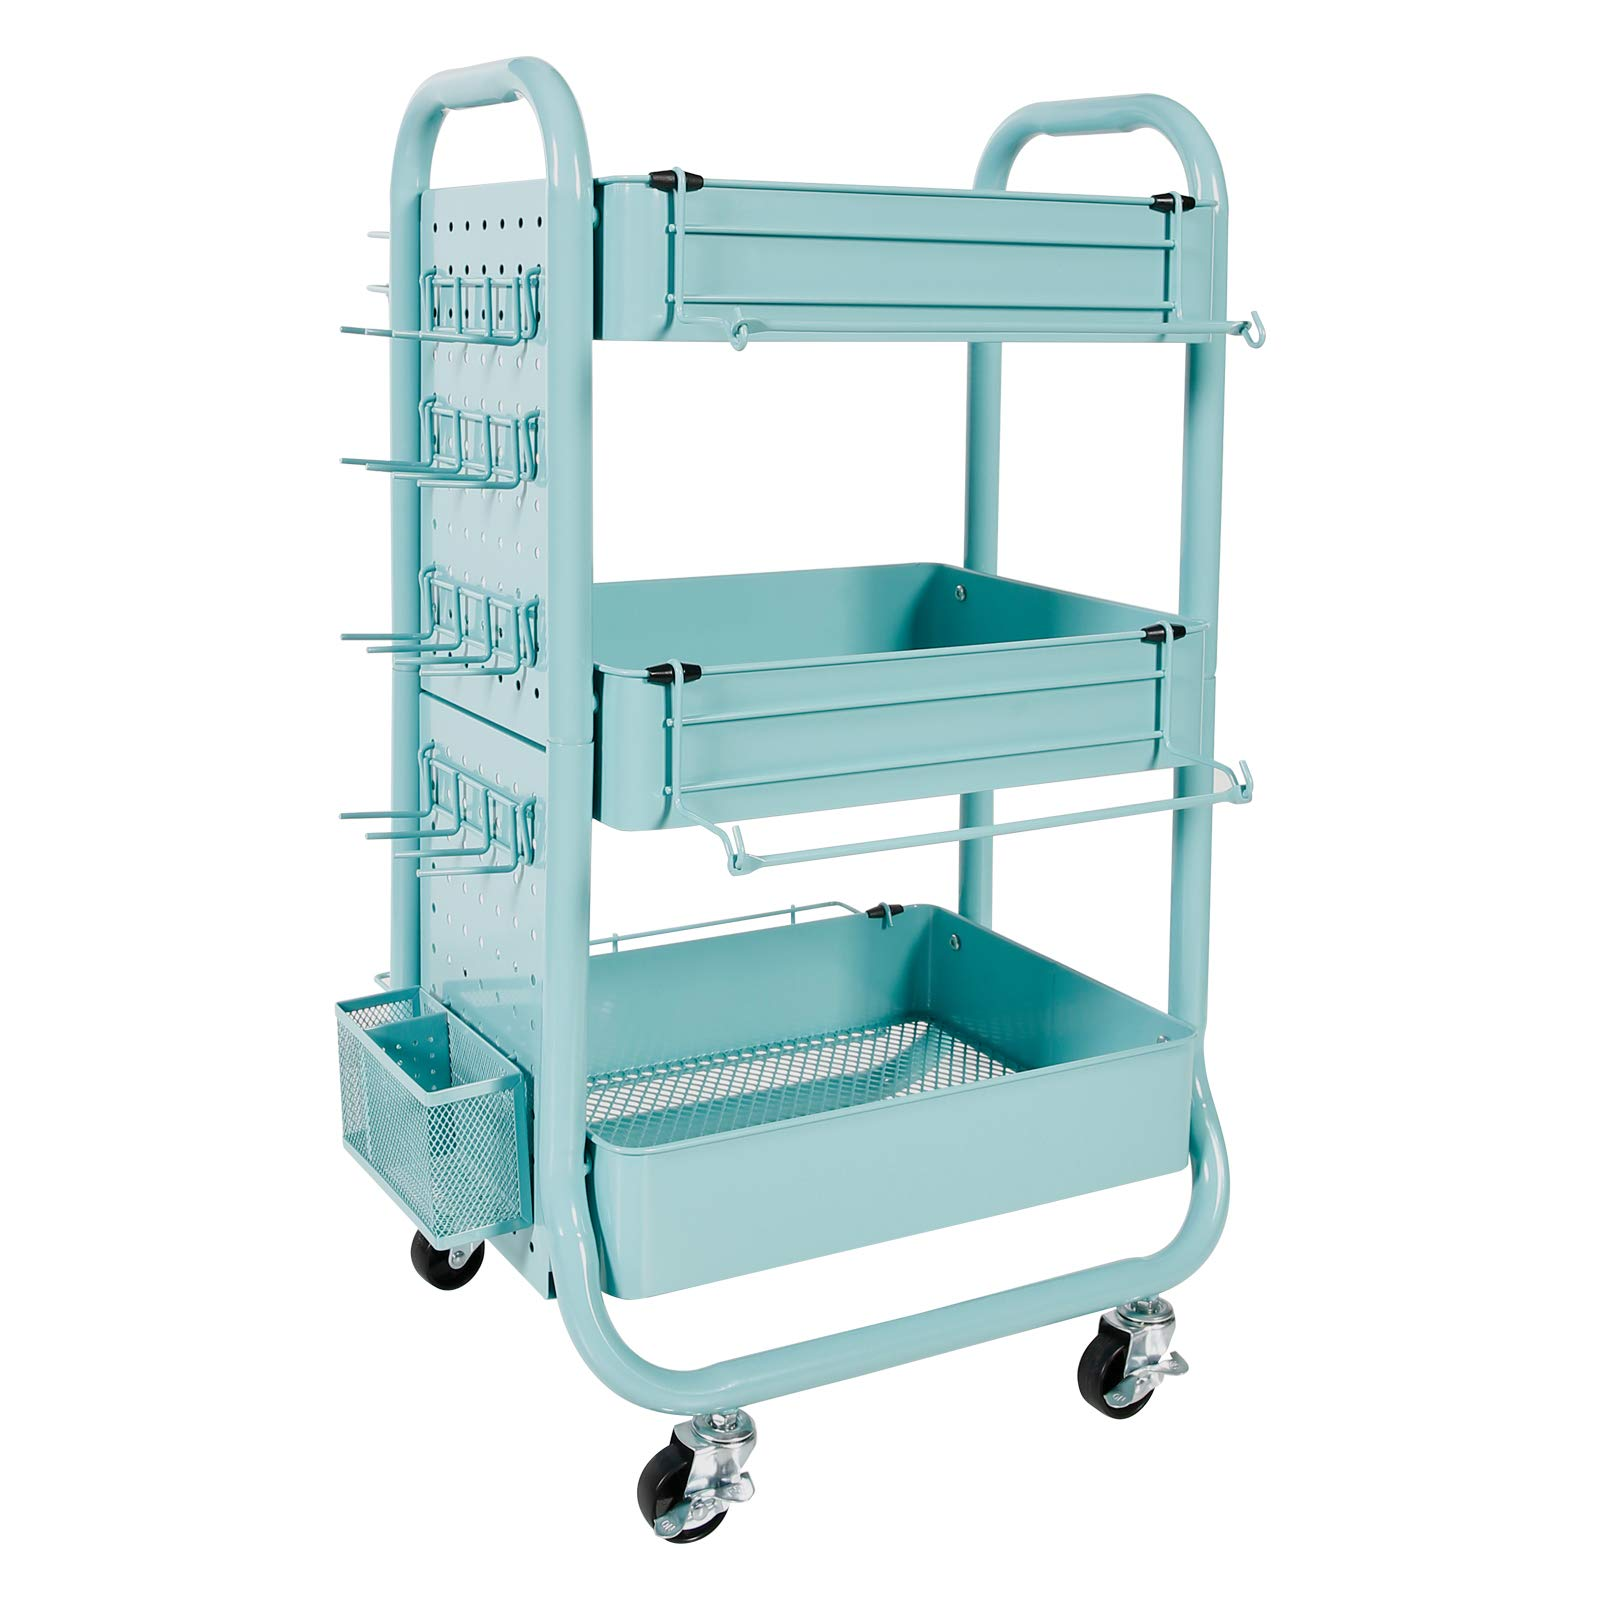 Gramercy Cart by Recollections, Teal by Recollections